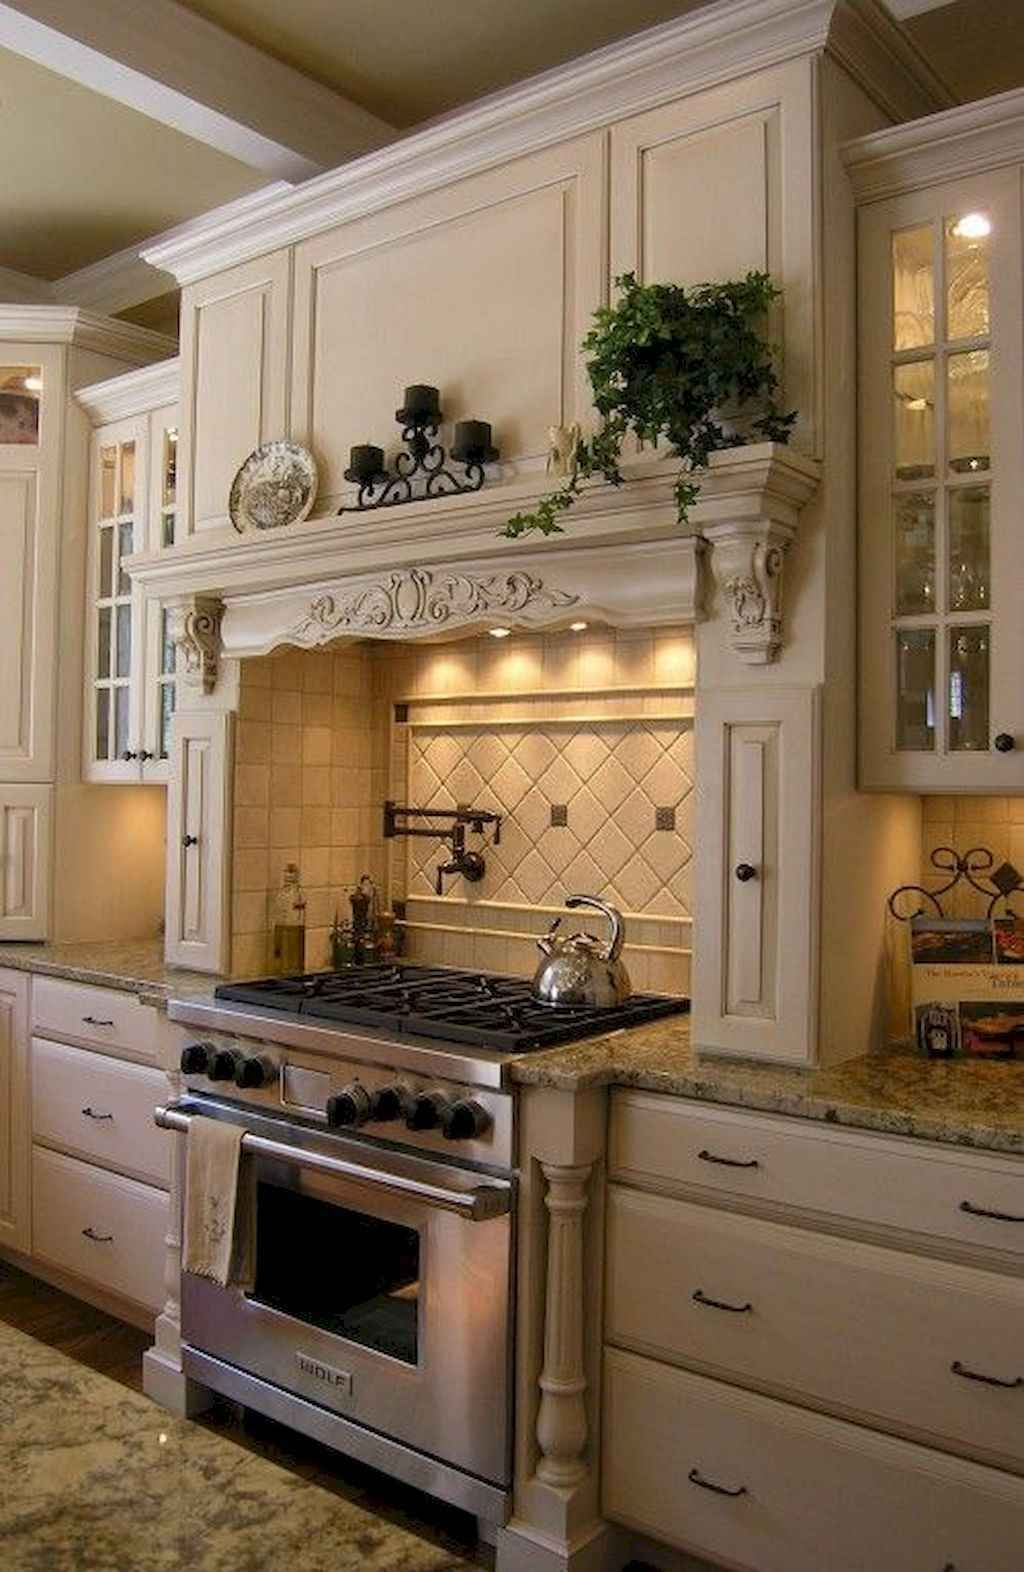 68 simple french country kitchen decor ideas in 2020 french country kitchens country kitchen on a kitchen design id=27599